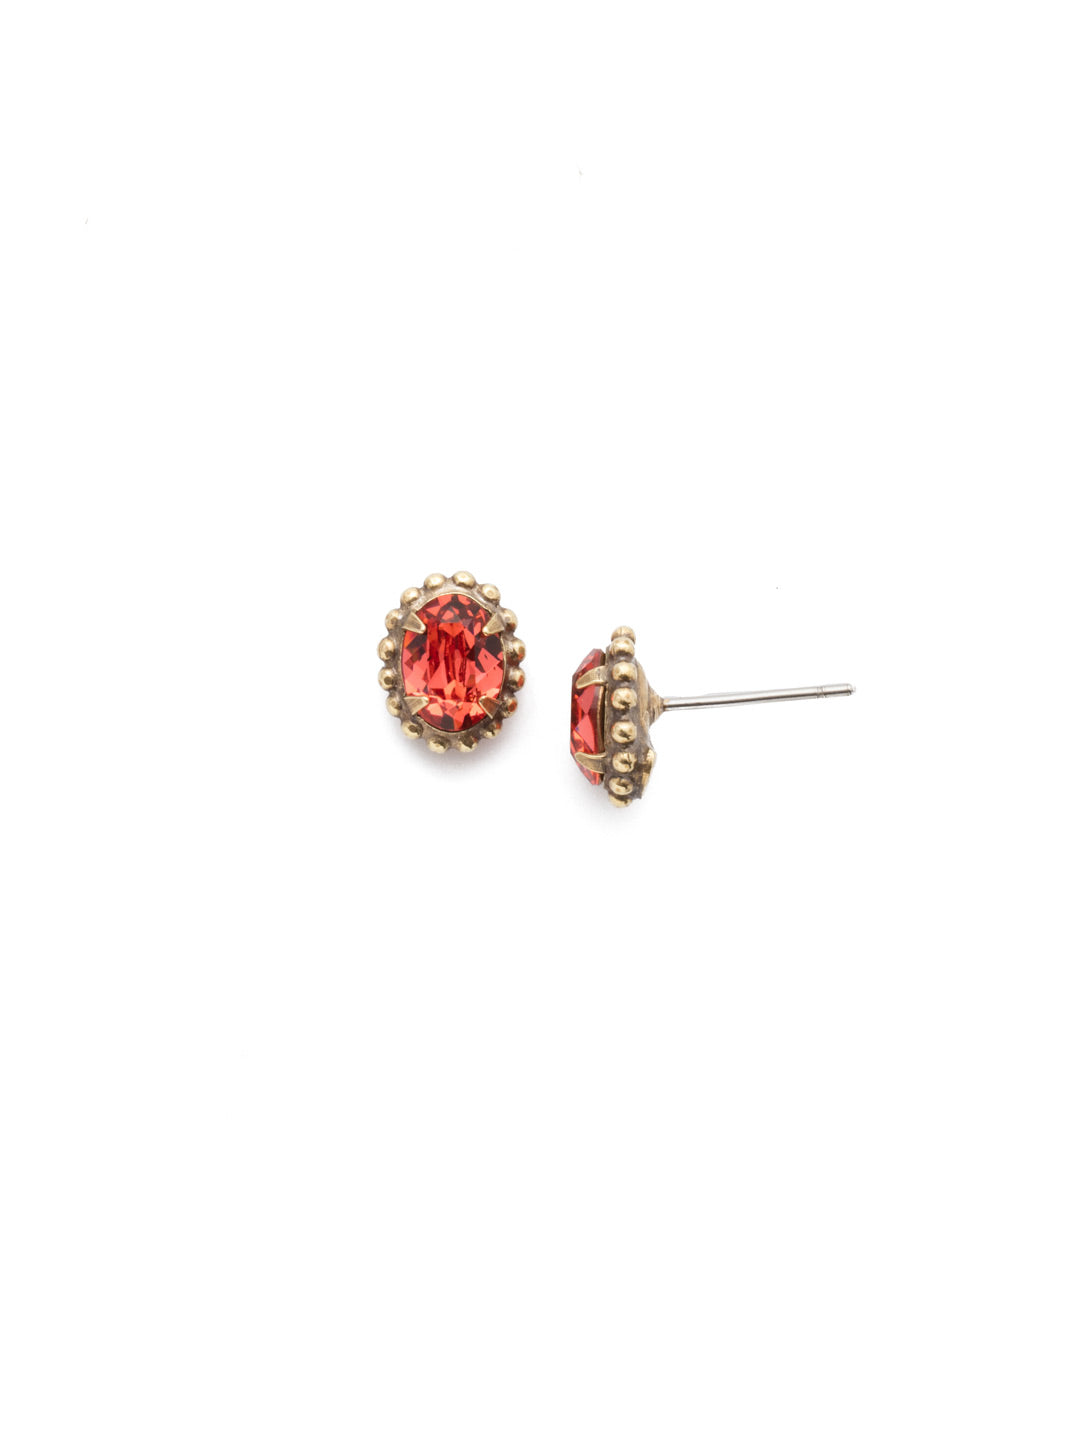 Maisie Stud Earrings - EEH11AGCRL